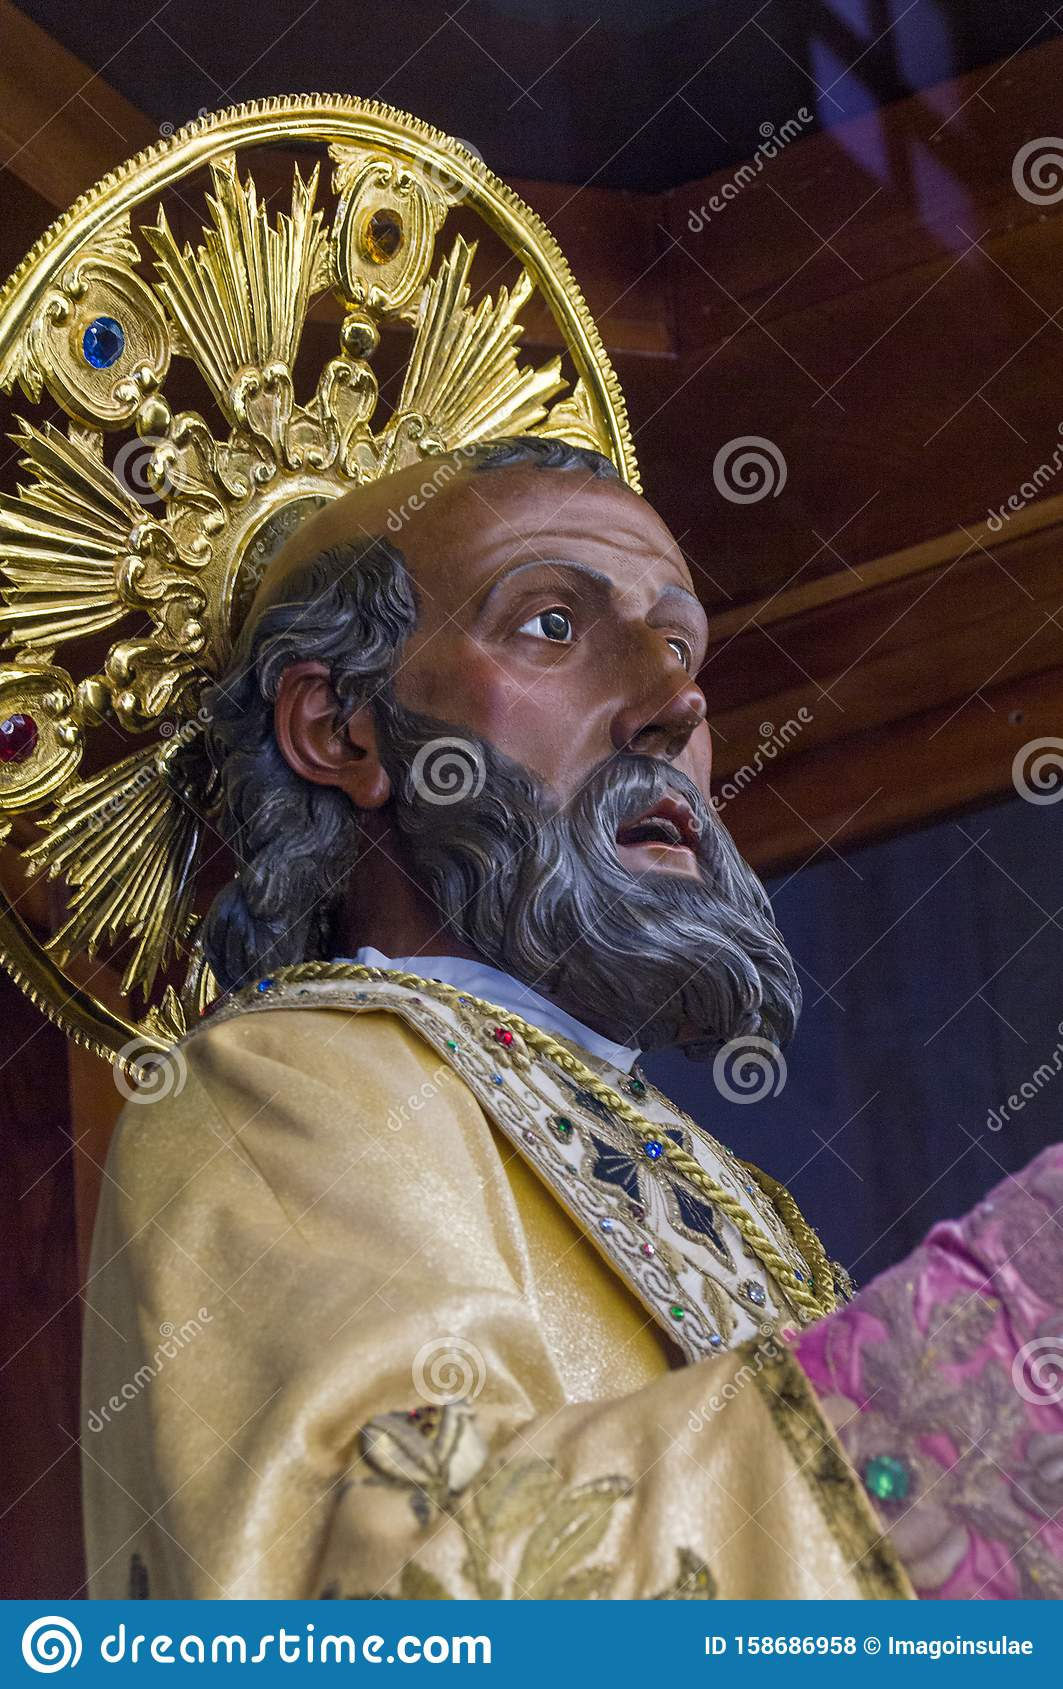 Italy. Bari. Popular devotion. The precious wooden simulacrum of St. Nicholas of Bari kept inside the basilica dedicated to him